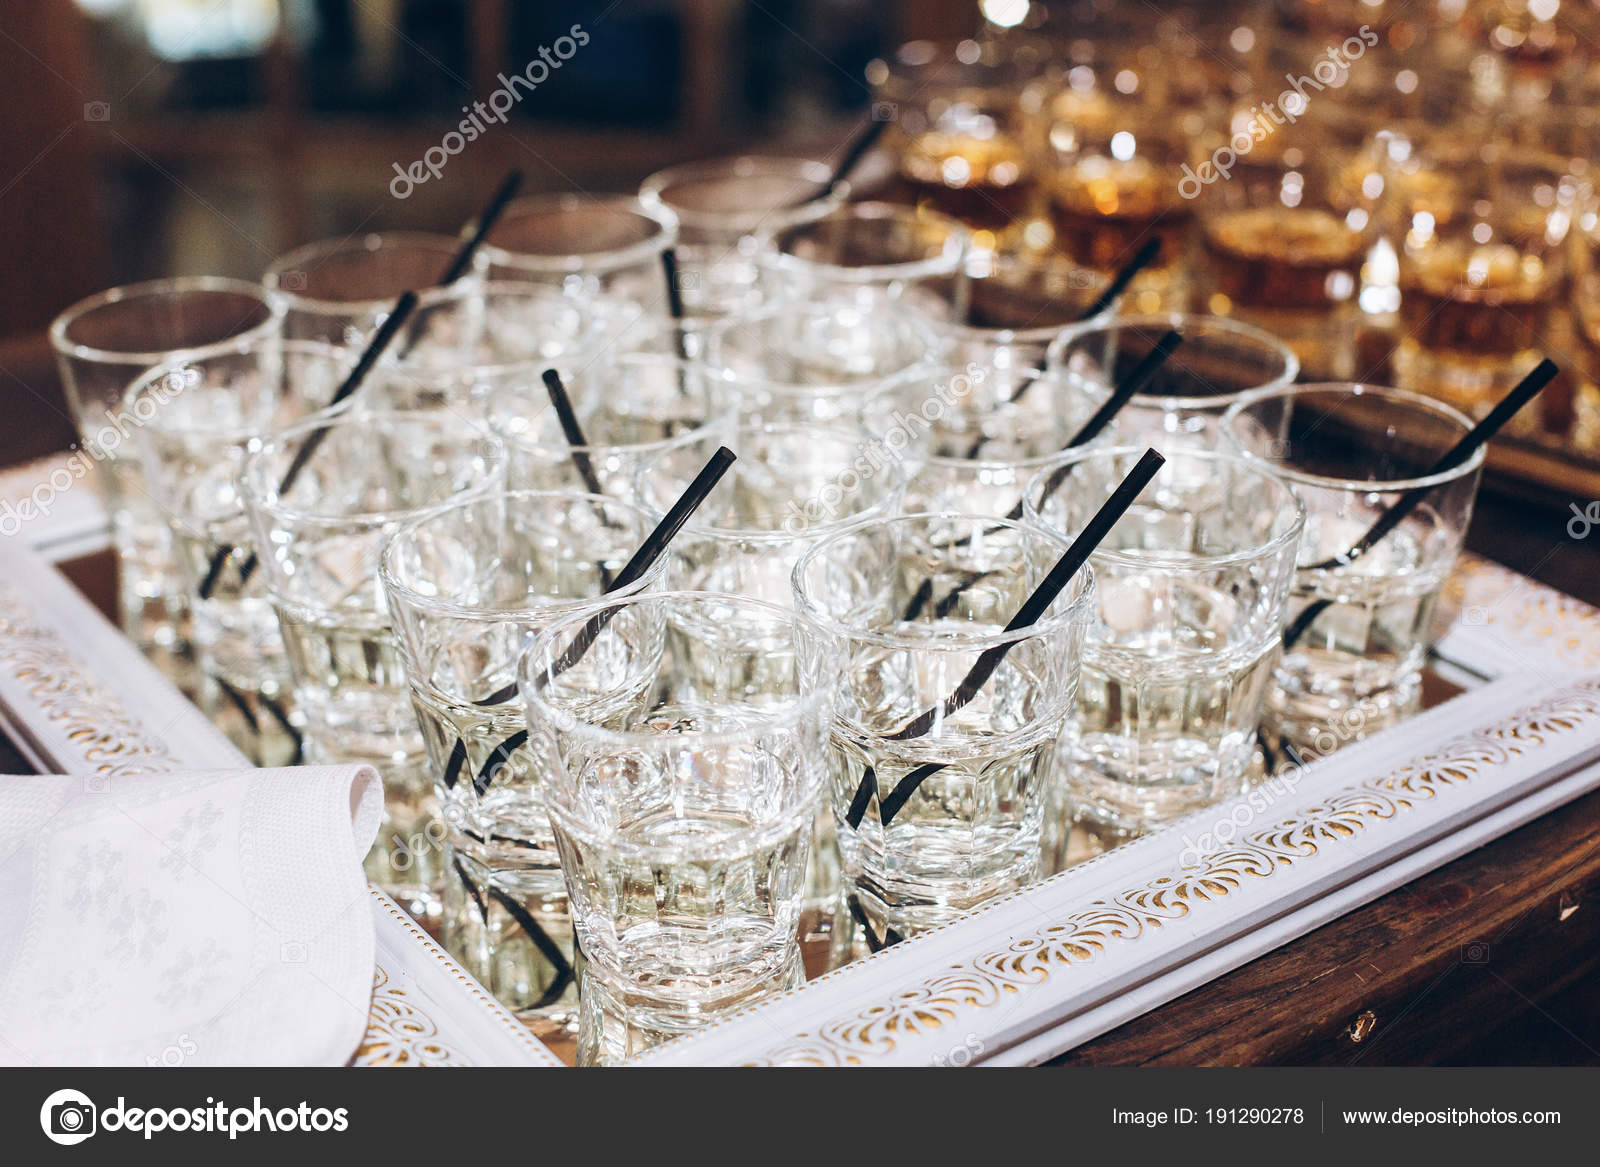 Stylish Glasses Martini Jin Black Straw Table Wedding Reception